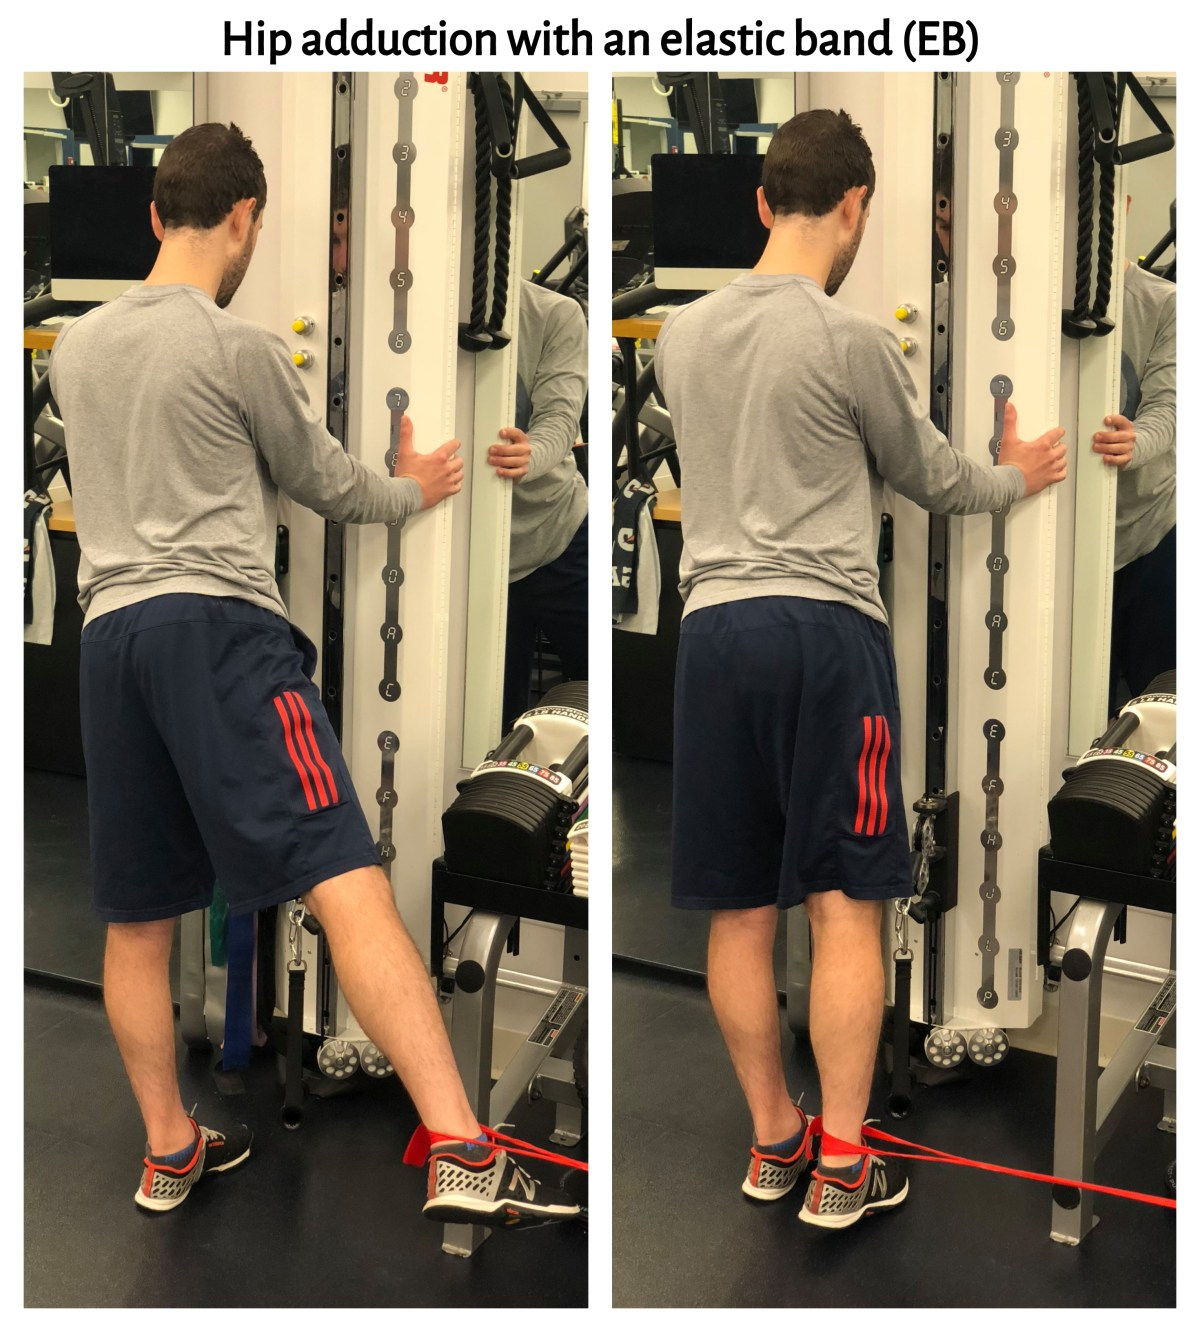 Hip-adduction-exercises-standing-hip-adduction-with-elastic-band-resistance-theraband